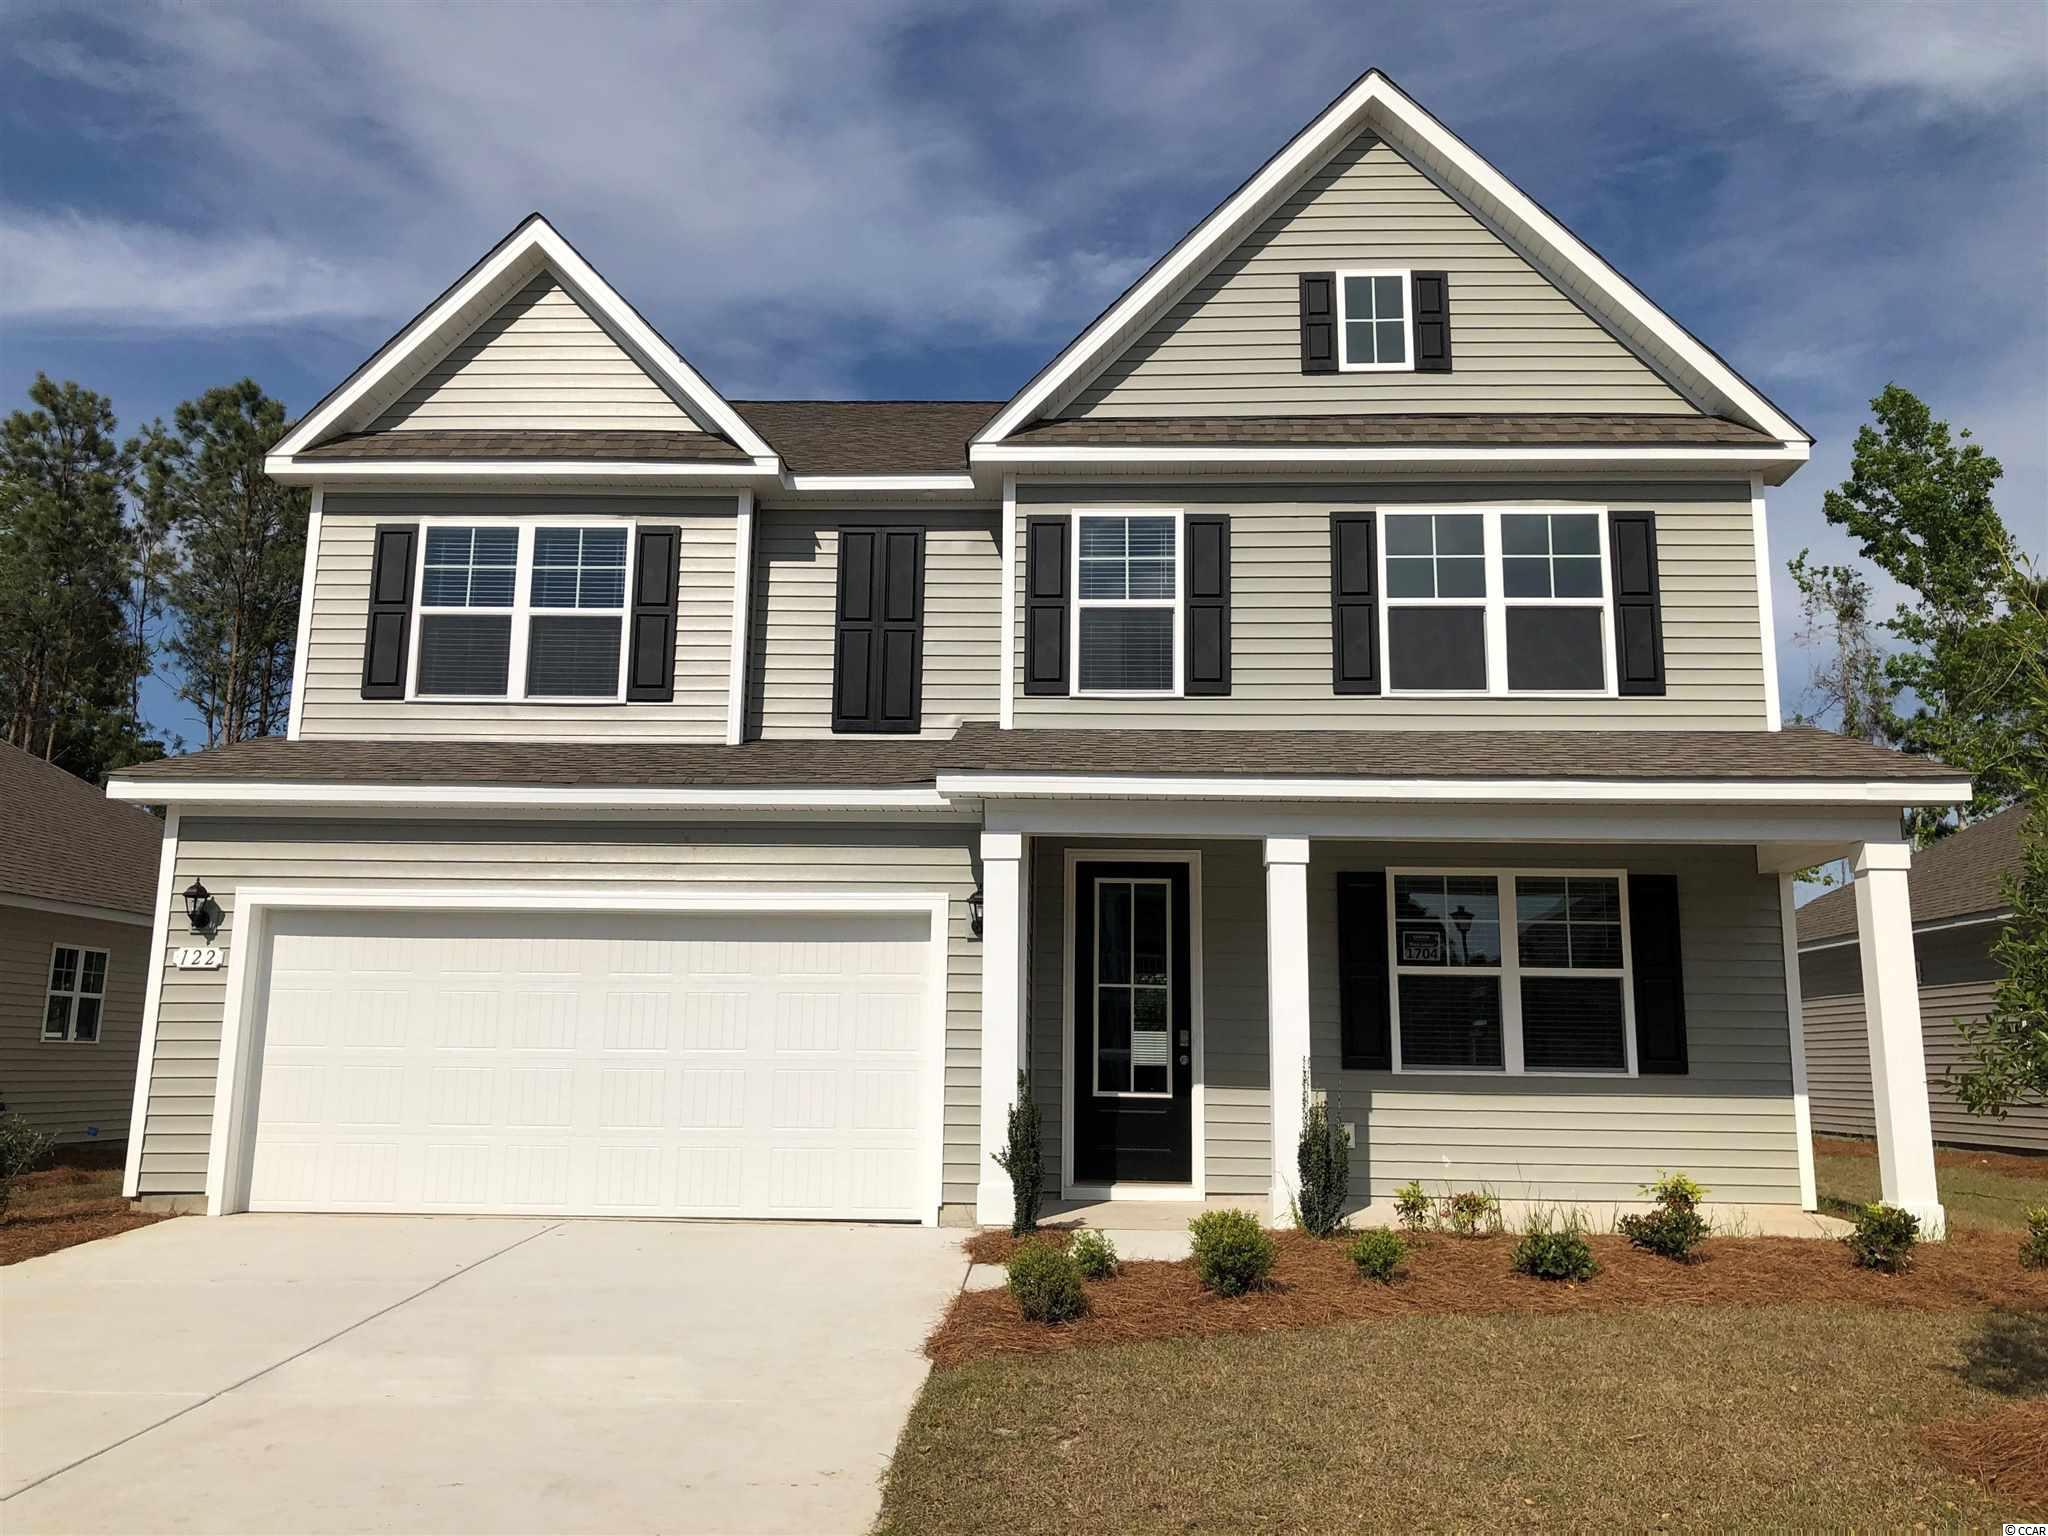 New phase now selling! Hidden Brooke is a beautiful community with an amenity that includes a pool with large deck area, clubhouse, and exercise room. Minutes away from Highway 31 which provides quick and easy access to all of the Grand Strand's offerings: dining, entertainment, shopping, and golf! Tranquil setting just a short drive to the beach. This popular Harbor Oak plan brings functionality and style together! Incredible curb appeal is an understatement given the cozy front porch and tall entry door. Once inside, laminate wood floors flow throughout the main living areas creating an inviting space and numerous windows bring in fantastic natural light. Off the entry is a spacious flex room that would make the perfect home office or formal dining room. The large gourmet kitchen boasts modern gray painted cabinetry, granite countertops, an oversized island, stainless Whirlpool appliances including a gas range, and a walk-in pantry. Spacious bedroom and full bathroom on the first floor is great for guests. Upstairs you will find the grand primary bedroom suite with a cozy sitting room, huge walk-in closet, and en suite bath with large separate vanities, linen closet, and 5 ft. shower! Two additional bedrooms, a hall bathroom with a double vanity, and a great loft space with lots of storage complete the upstairs.  *Photos are of a similar Harbor Oak home.  (Home and community information, including pricing, included features, terms, availability and amenities, are subject to change prior to sale at any time without notice or obligation. Square footages are approximate. Pictures, photographs, colors, features, and sizes are for illustration purposes only and will vary from the homes as built. Equal housing opportunity builder.)